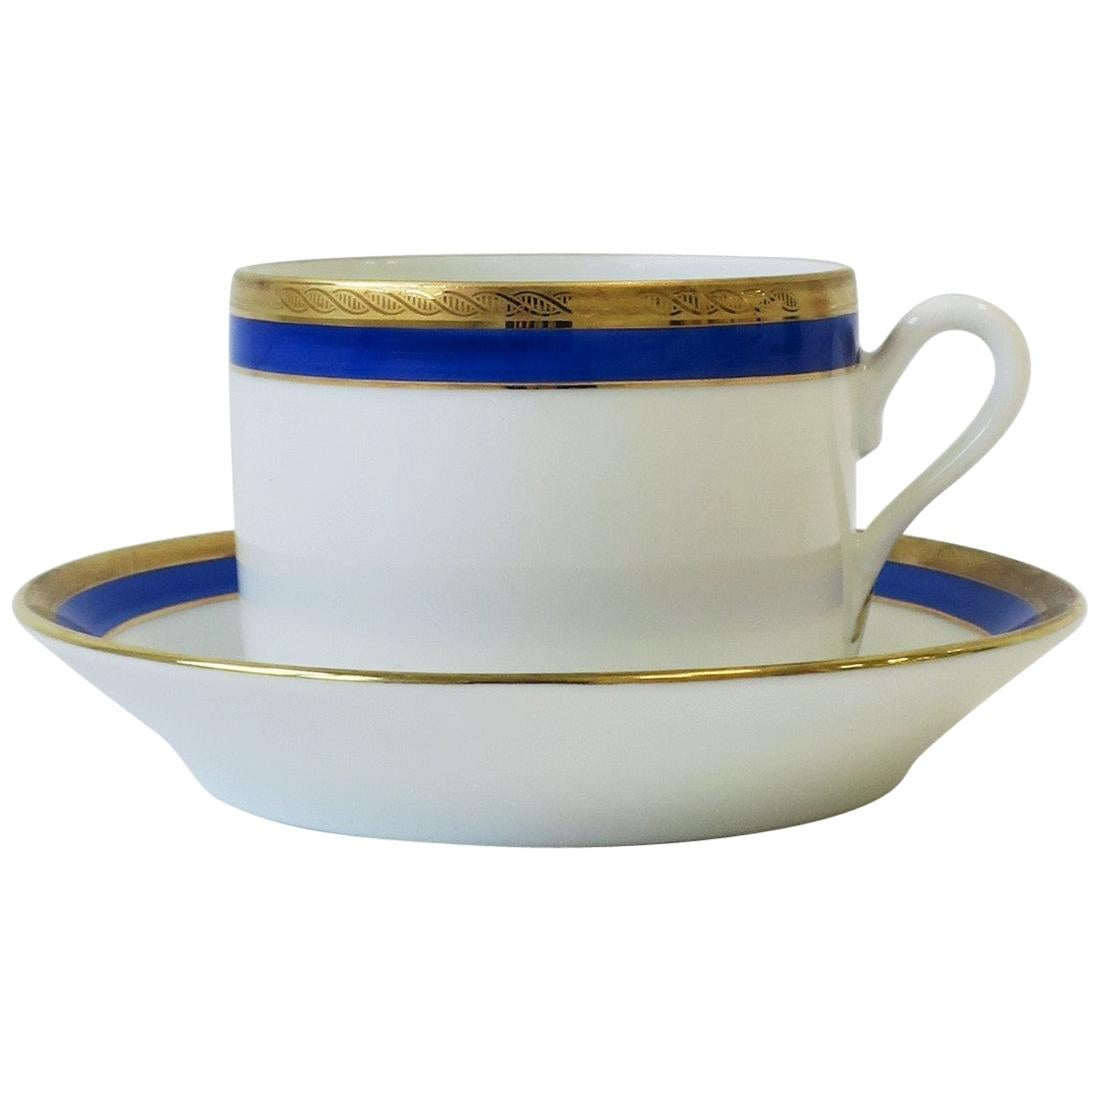 Richard Ginori Designer Italian Coffee or Tea Cup and Saucer in Blue and Gold